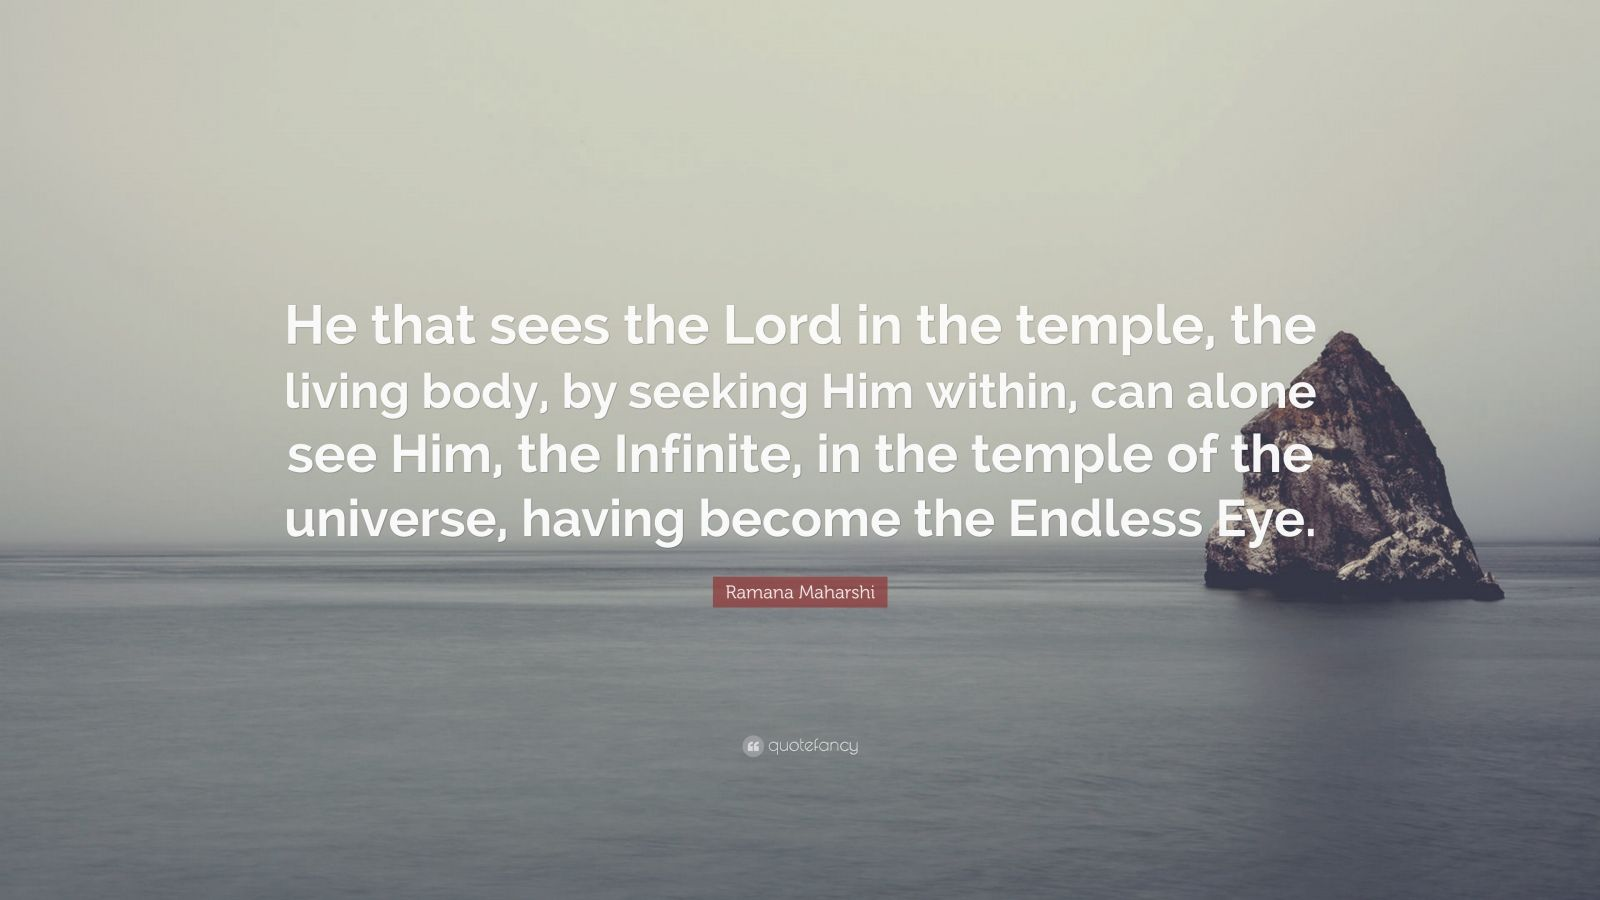 """Ramana Maharshi Quote: """"He that sees the Lord in the temple, the living body, by seeking Him within, can alone see Him, the Infinite, in the temple of the universe, having become the Endless Eye."""""""